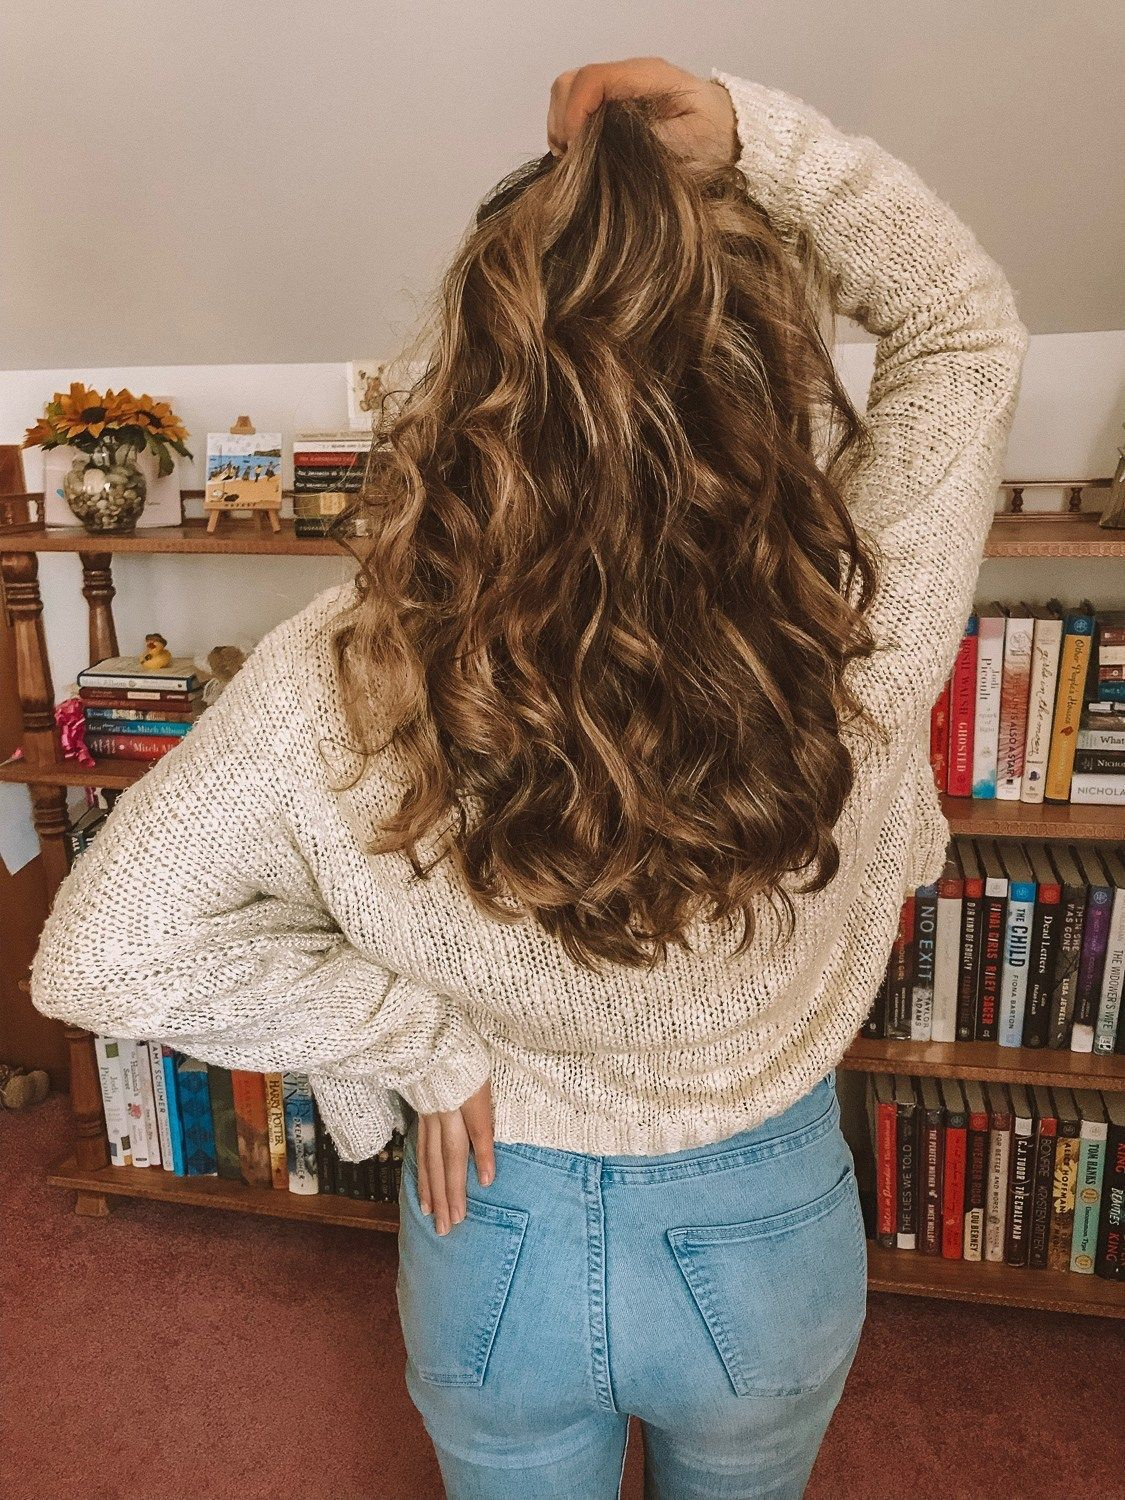 Hair Products for Wavy Hair Long hair styles, Favorite